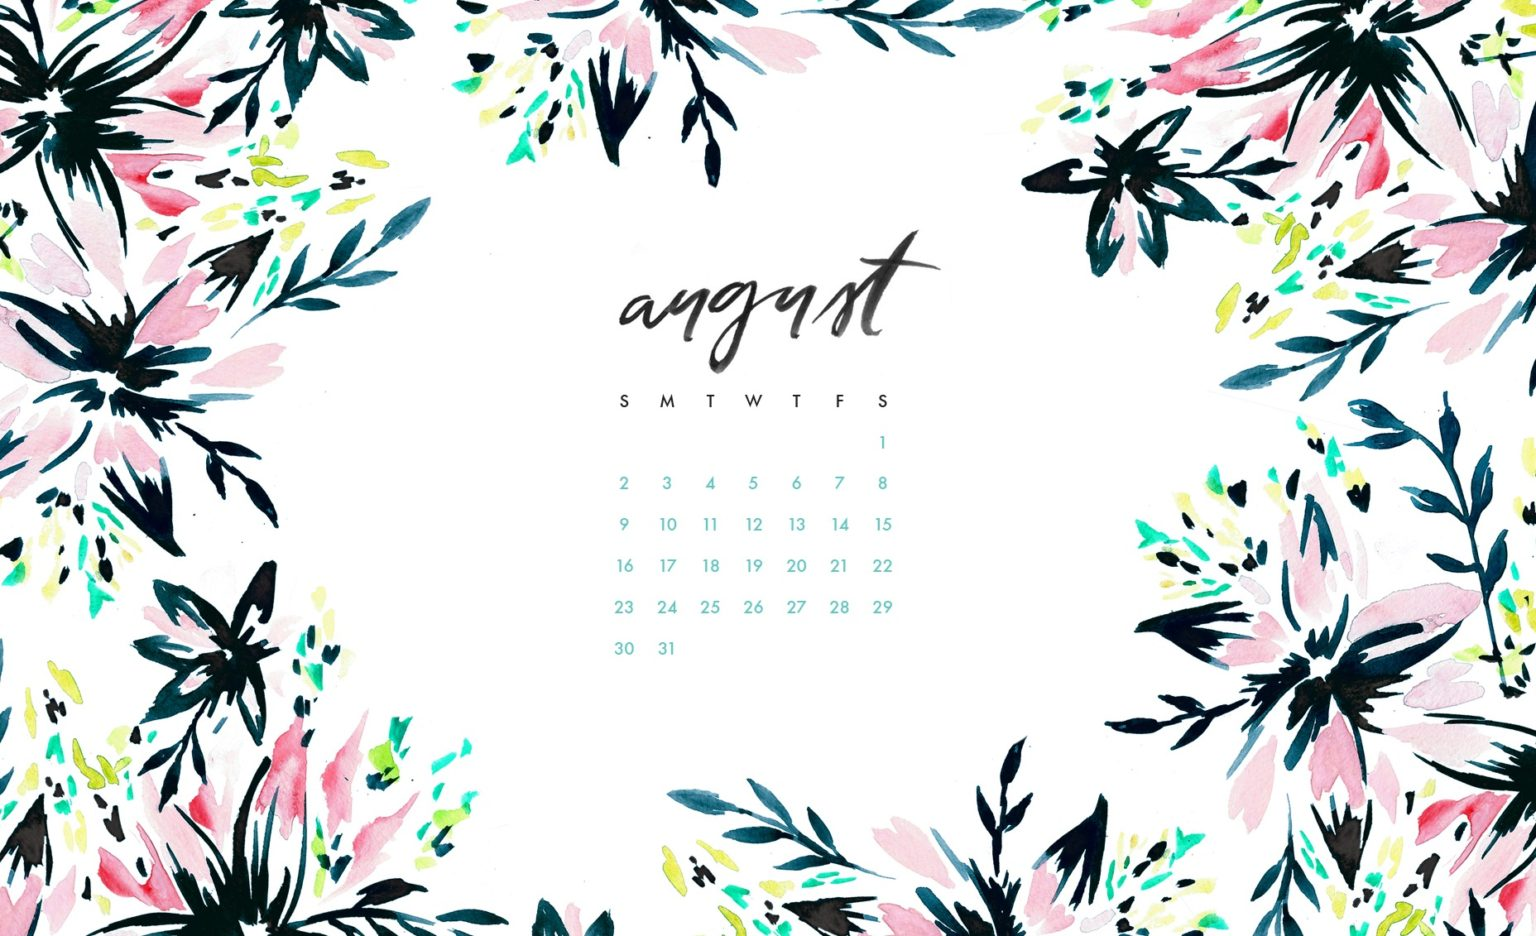 Floral August 2020 Desktop Wallpaper